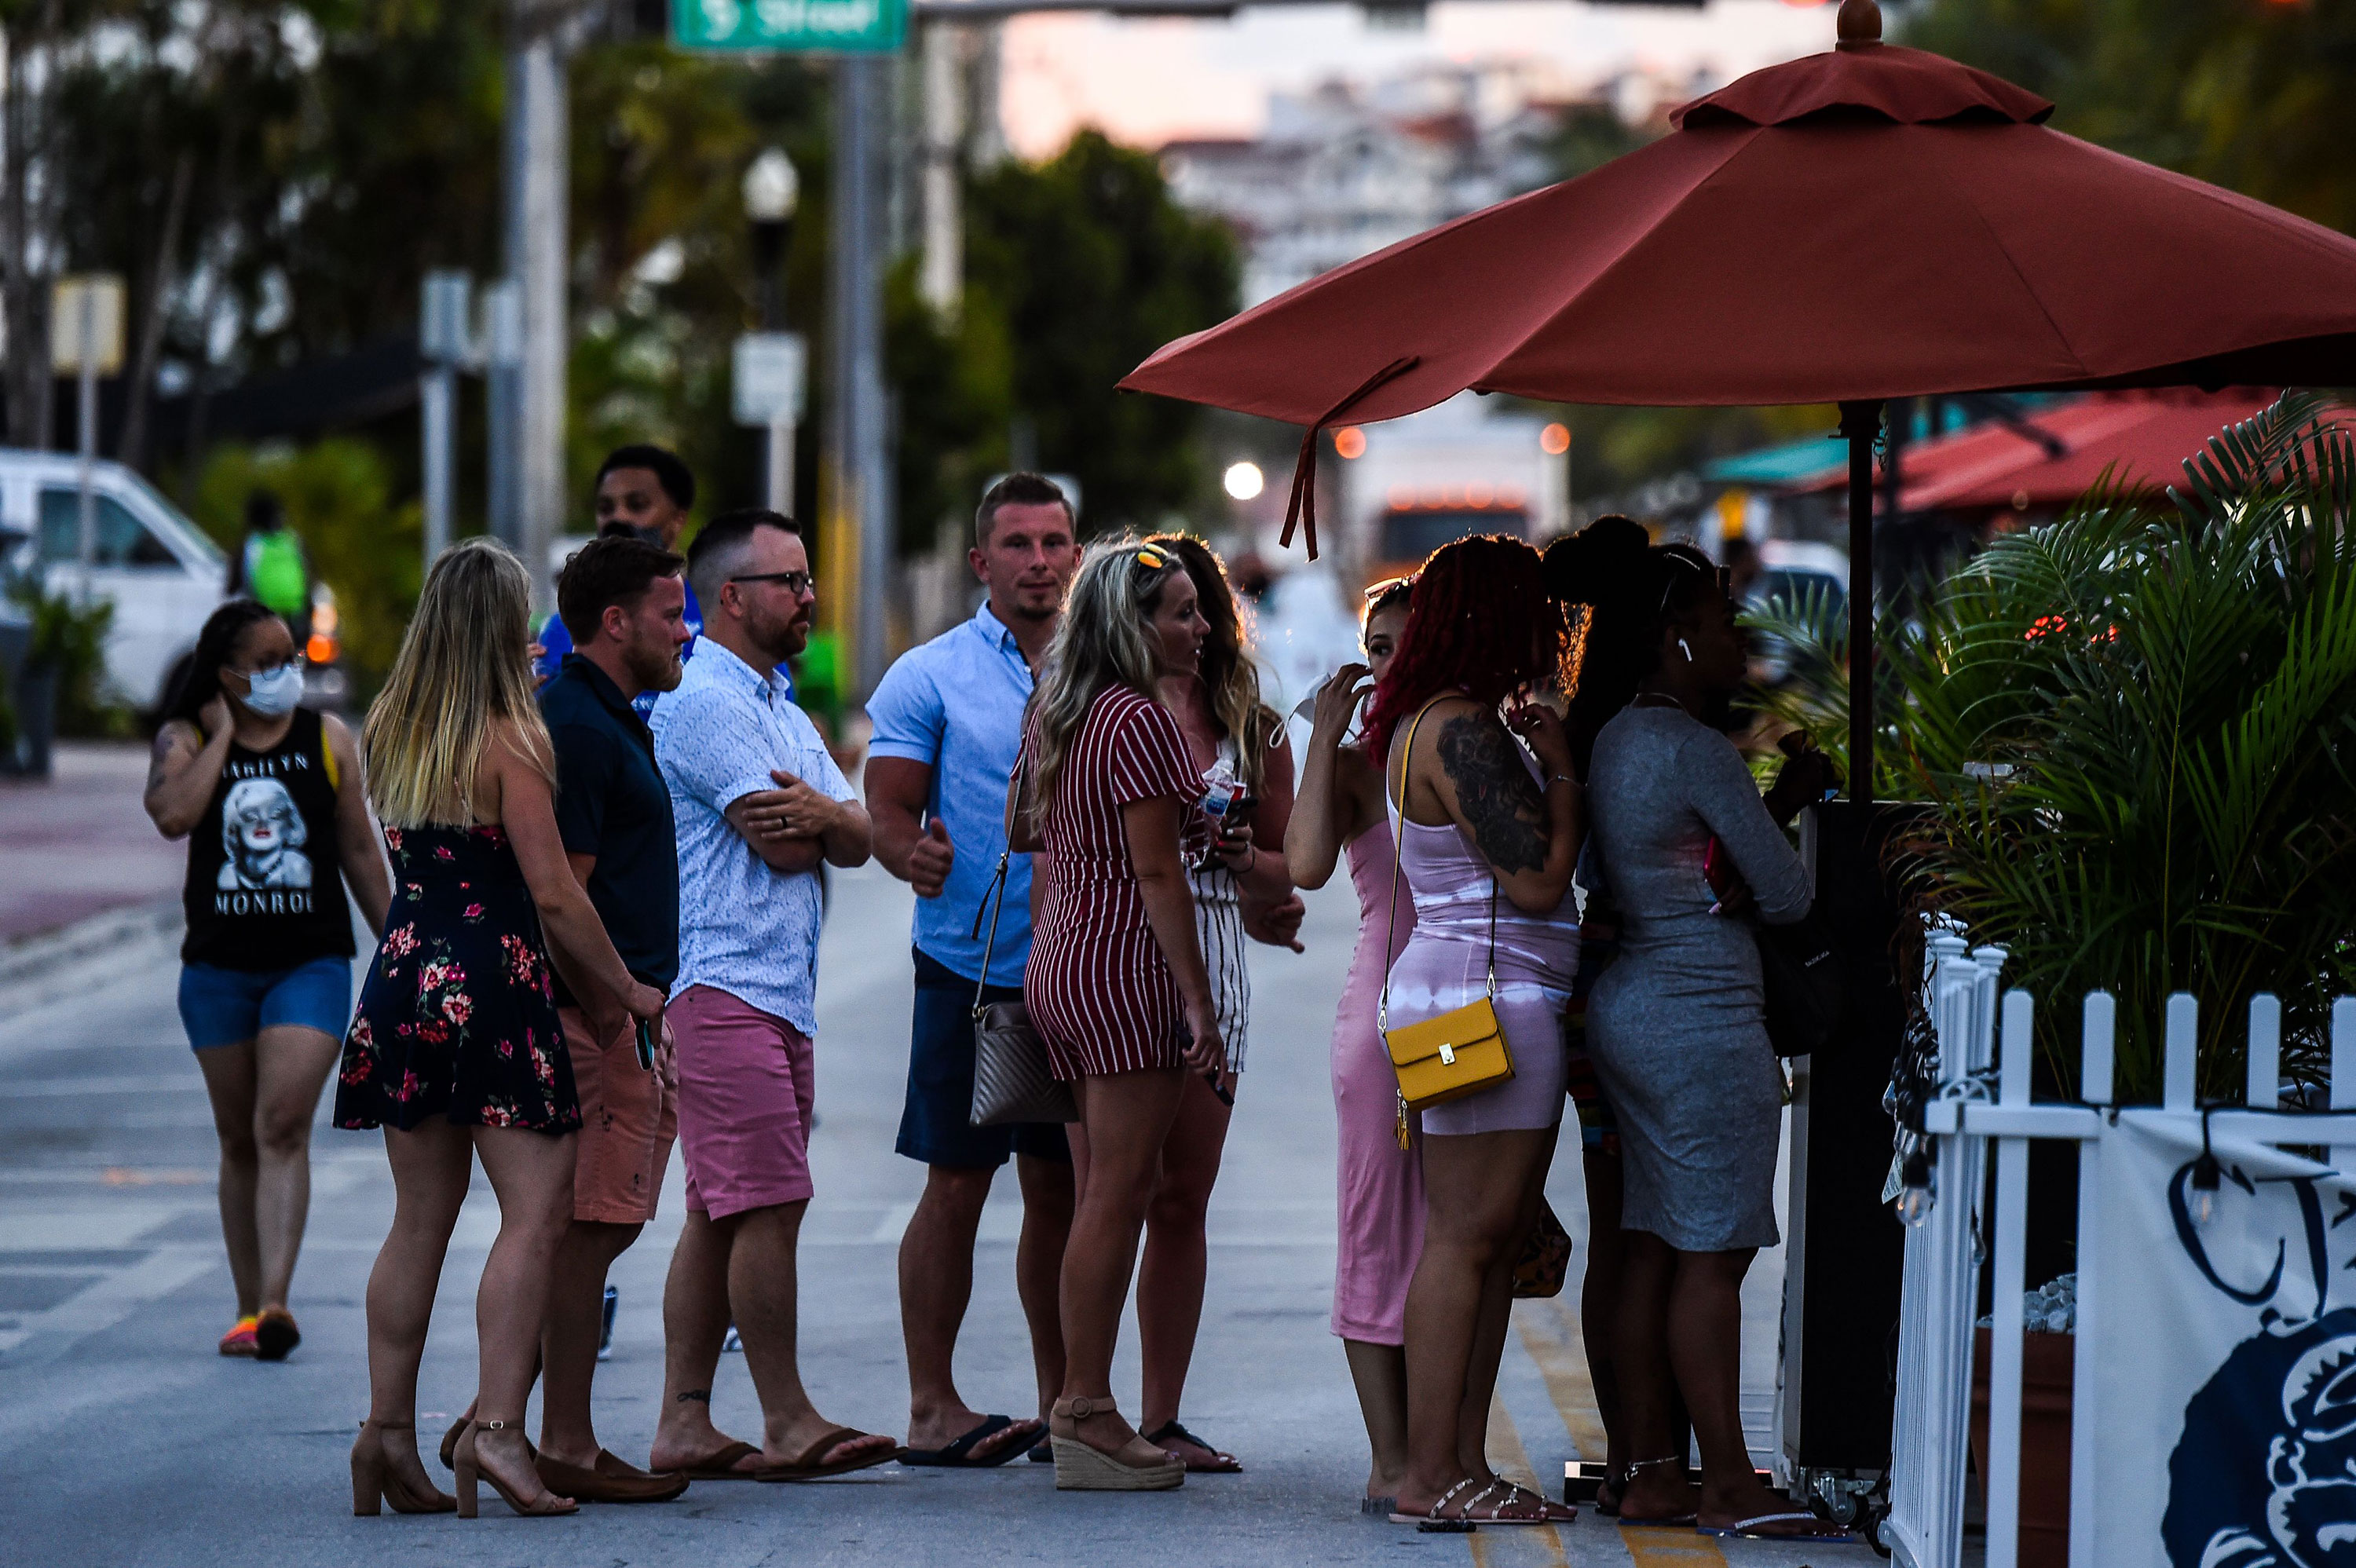 People stand in line at a restaurant on Ocean Drive in Miami Beach, Florida, on June 26.